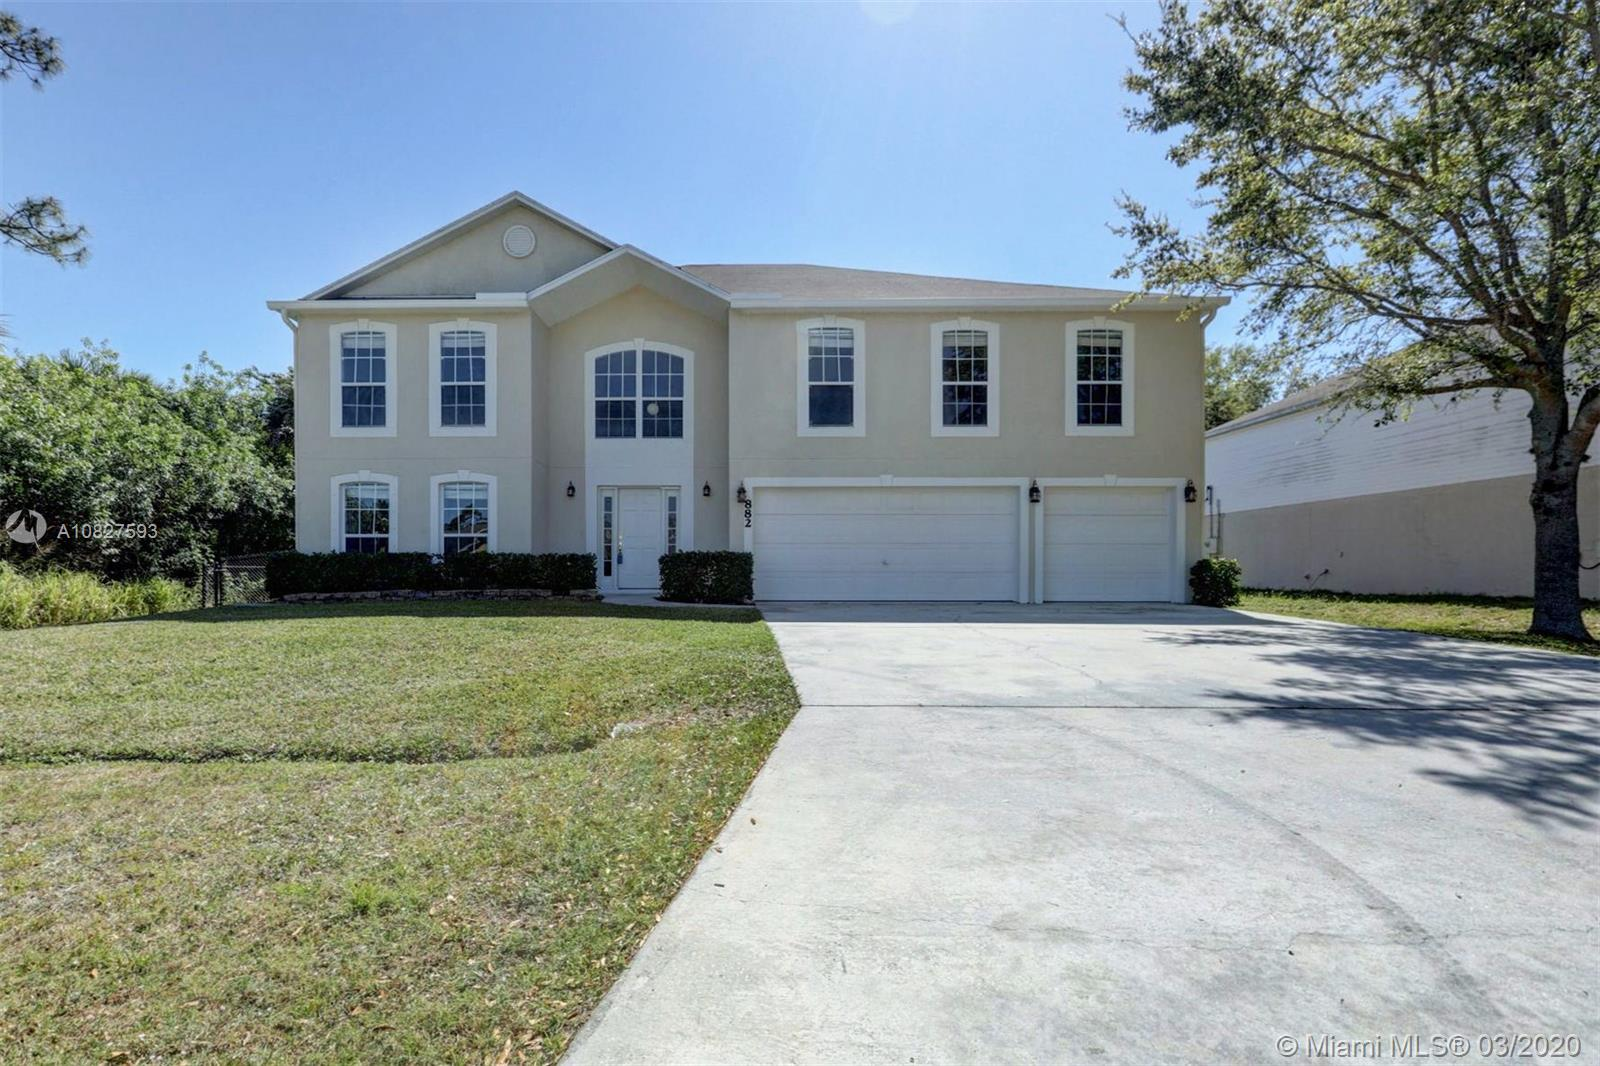 882 SW Abingdon Ave, Port St. Lucie, FL 34953